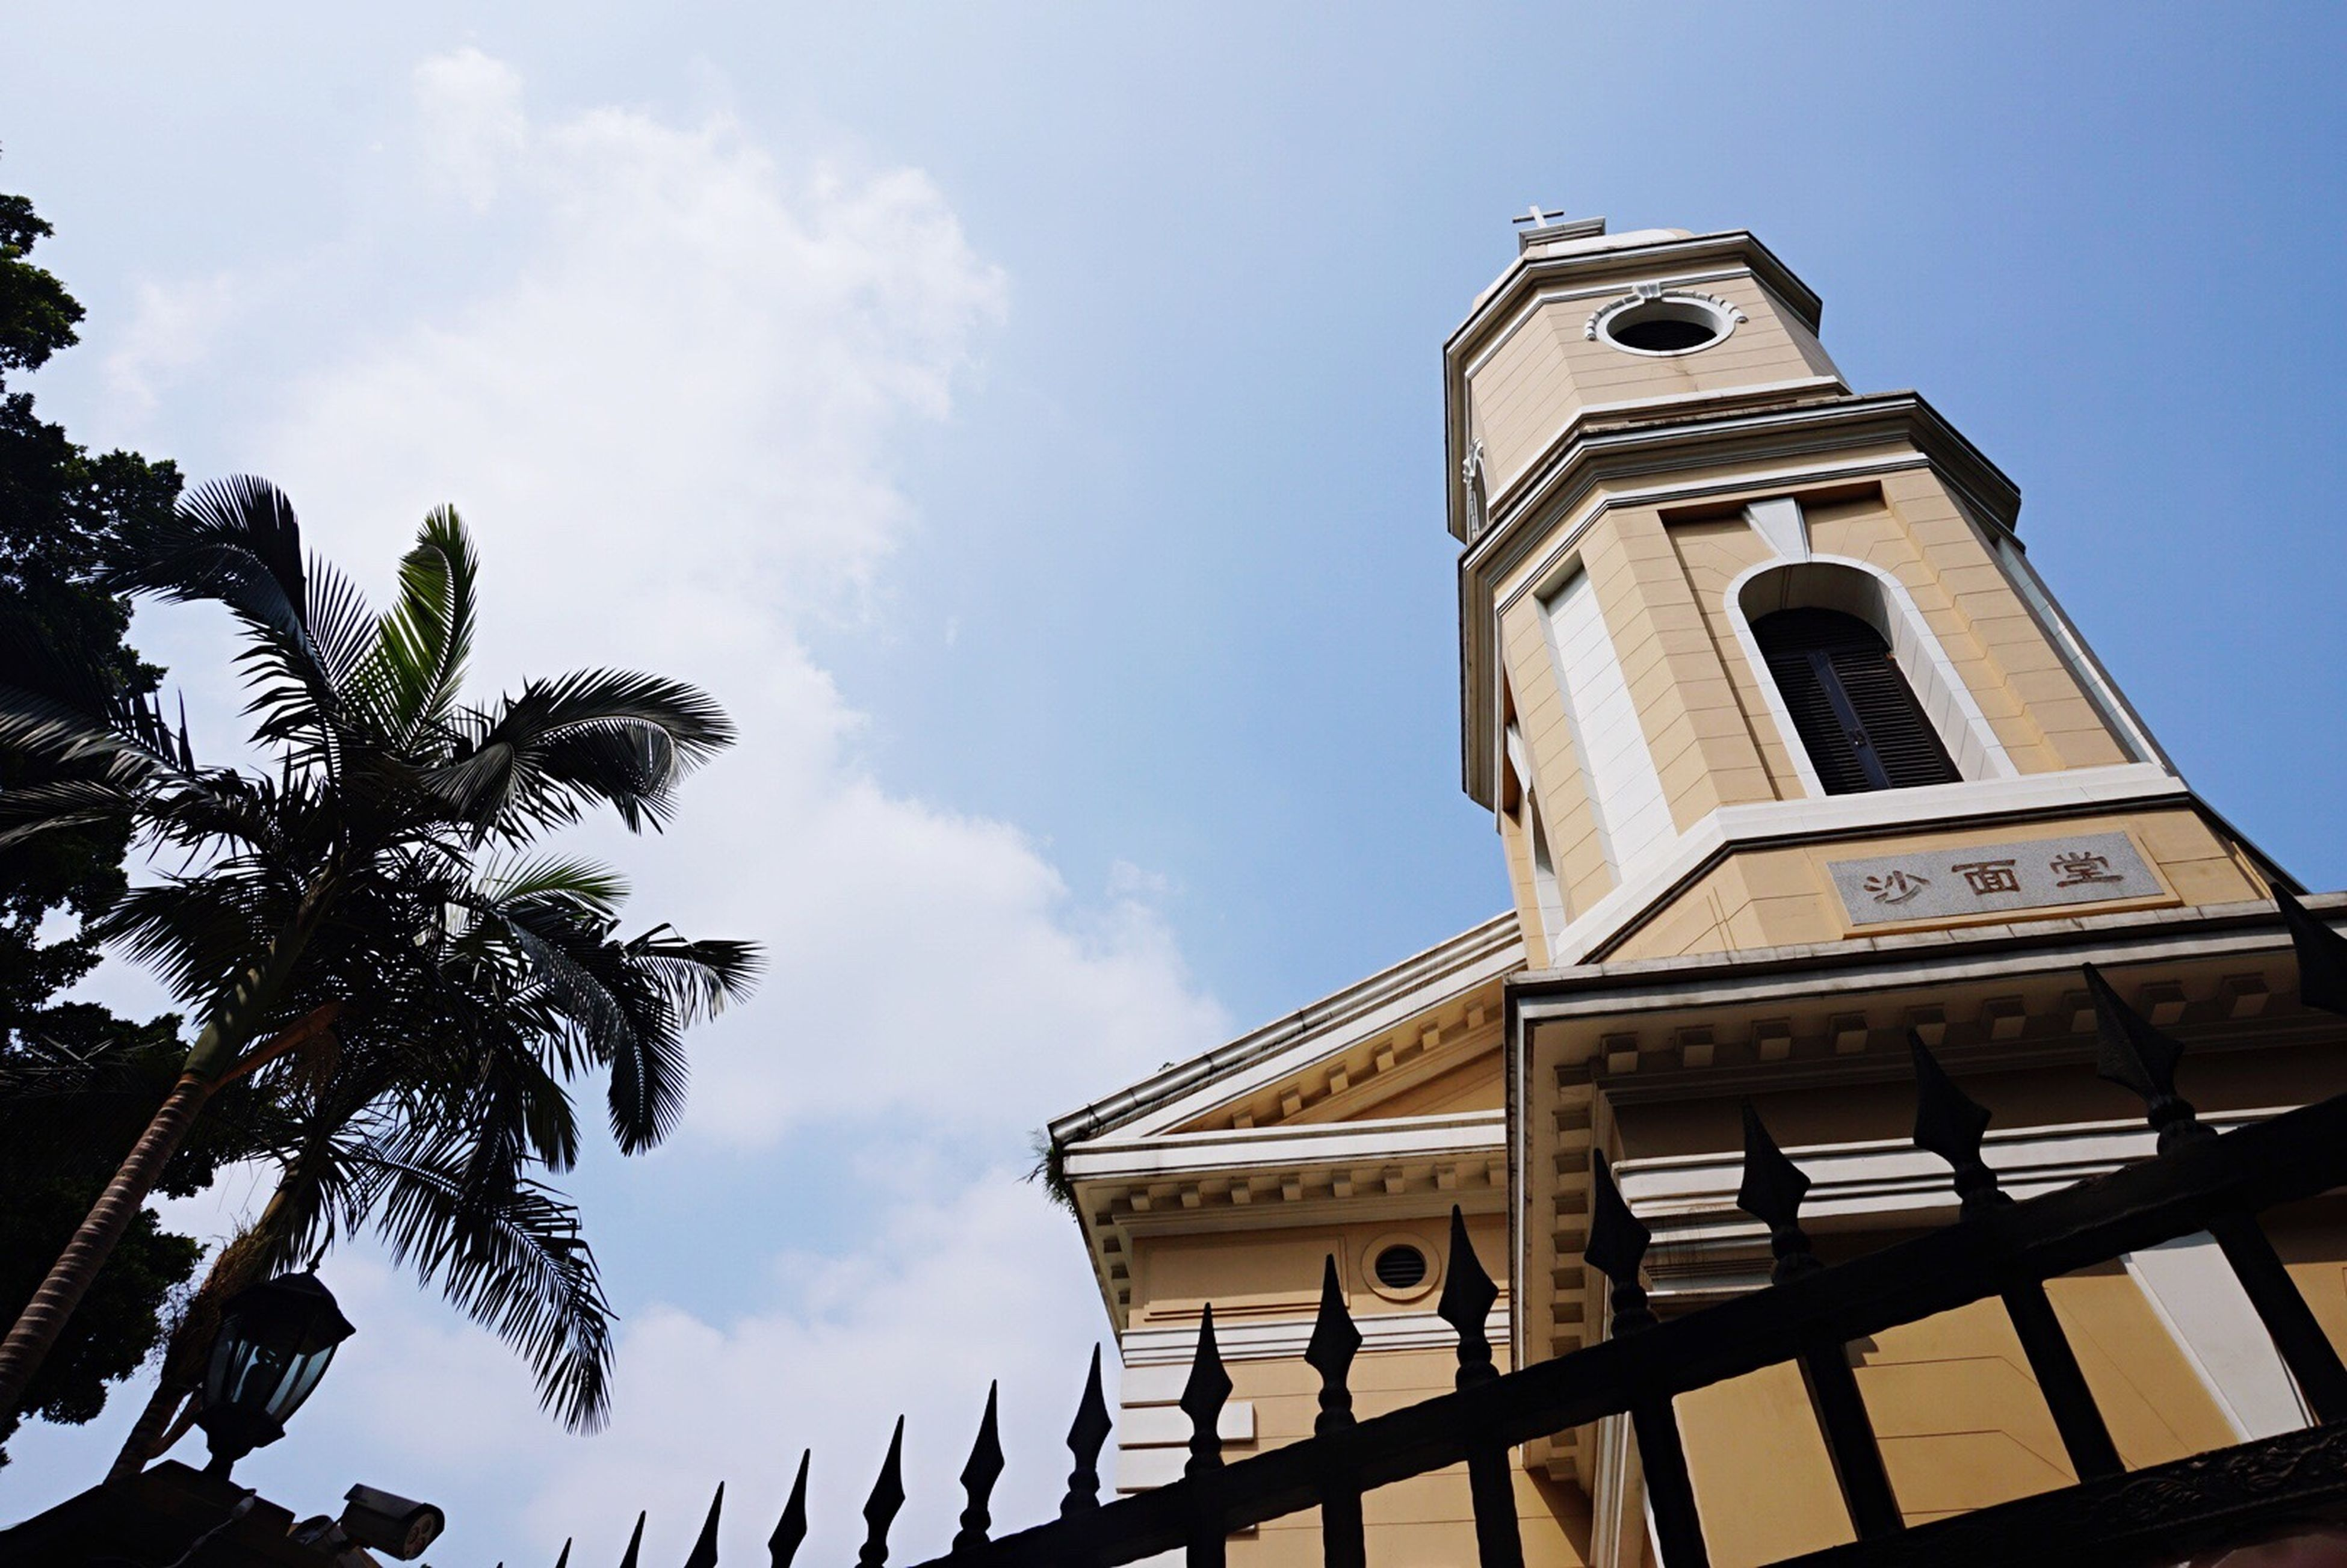 low angle view, architecture, built structure, building exterior, sky, church, religion, place of worship, tower, spirituality, clock tower, high section, history, window, day, no people, outdoors, tree